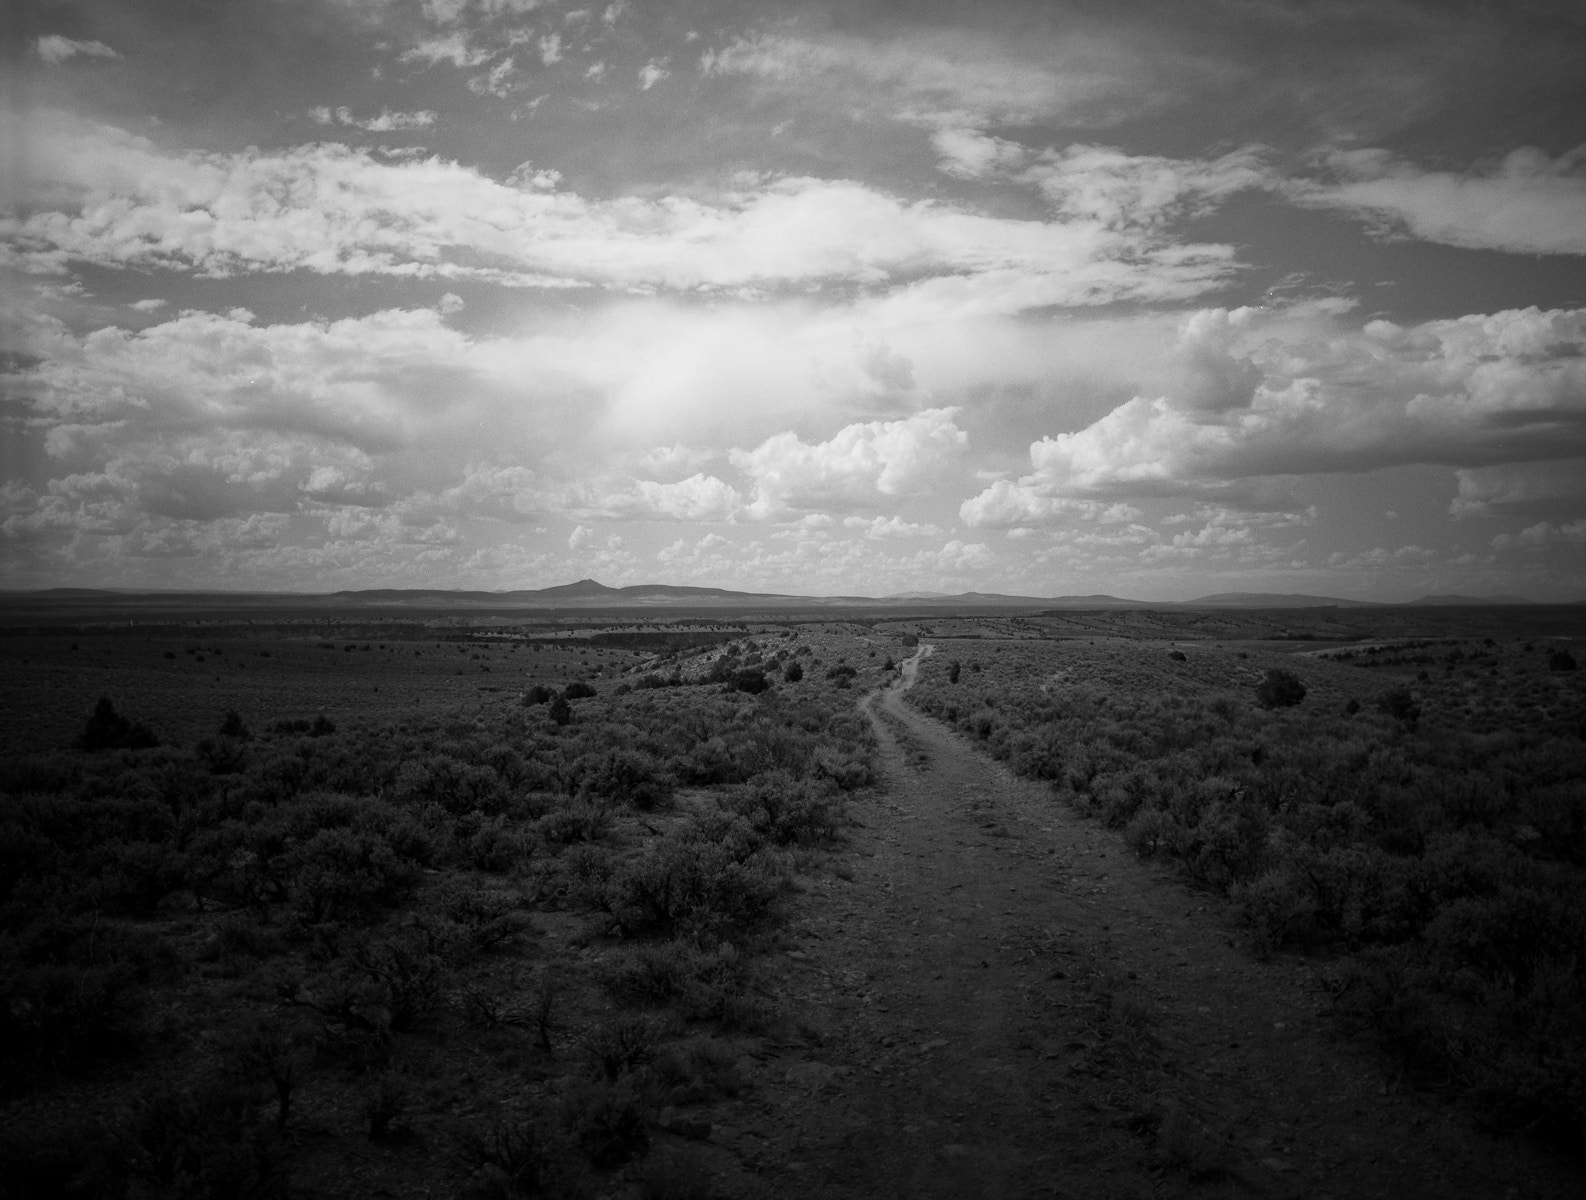 Photograph approaching the rio grande gorge by matt sawyer on 500px